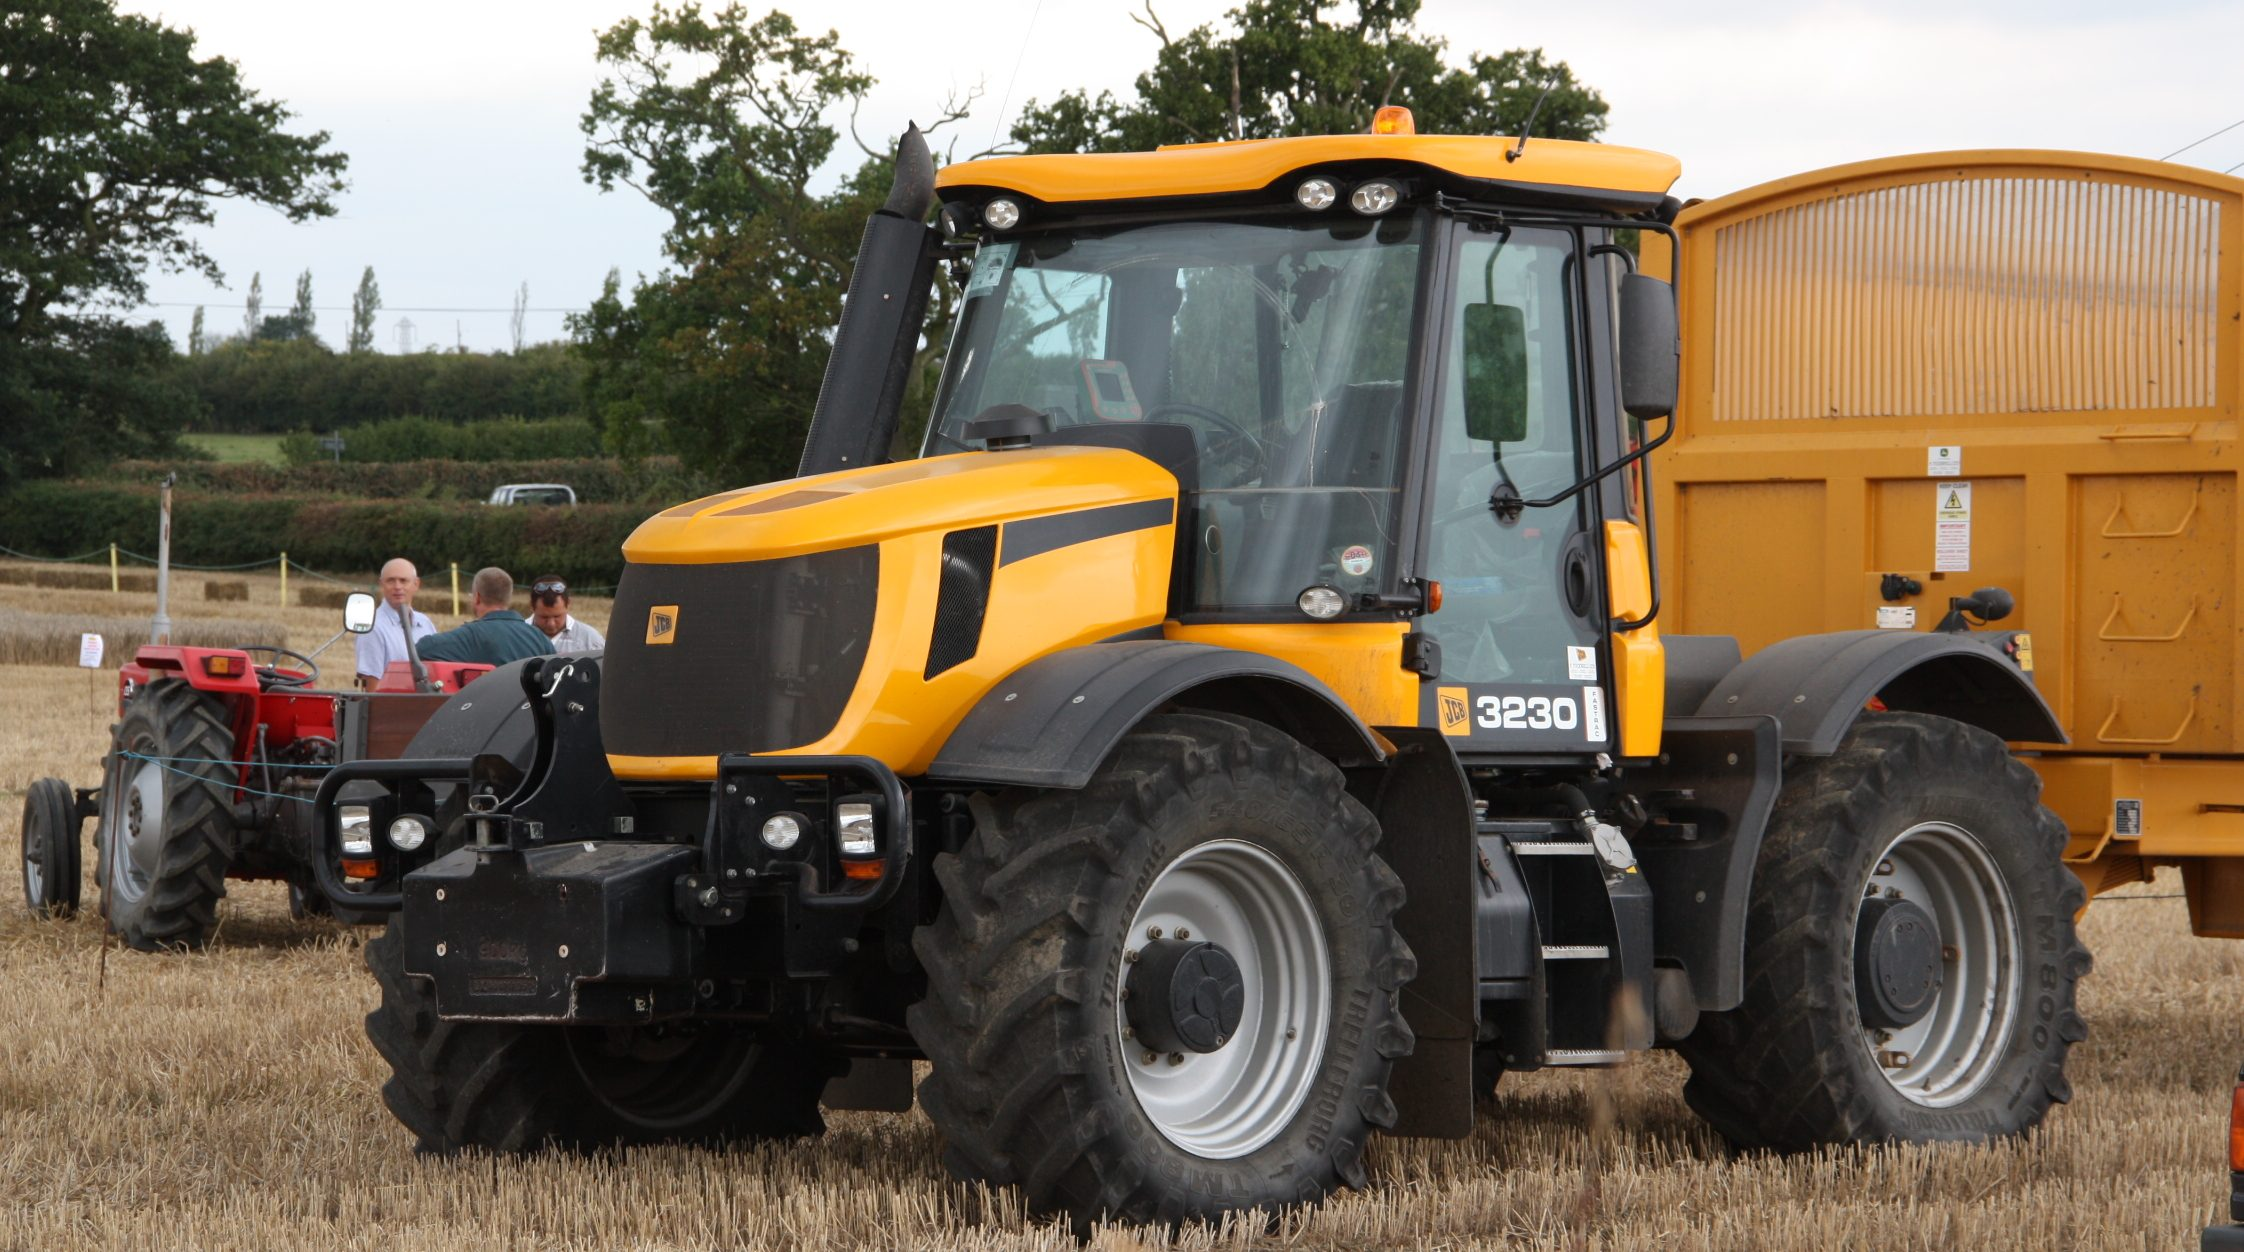 Jcb Fastrac Transmission : Oil suitable for jcb tractor including w engine